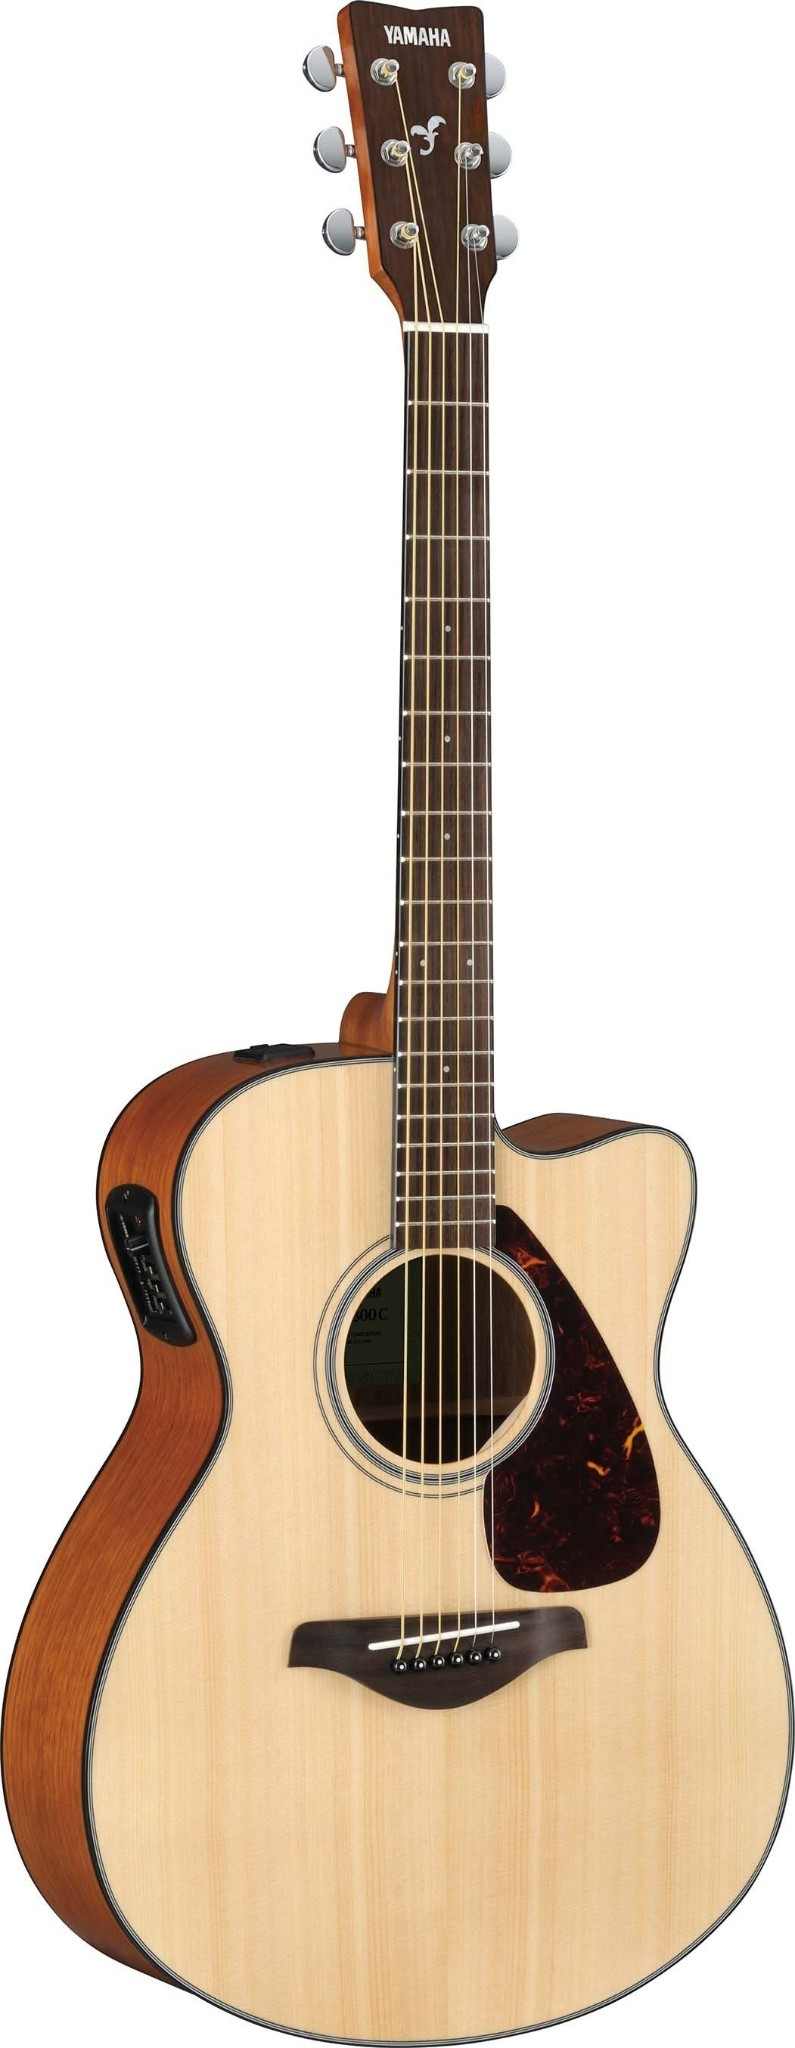 Yamaha Solid Spruce Top Acoustic Natural  …